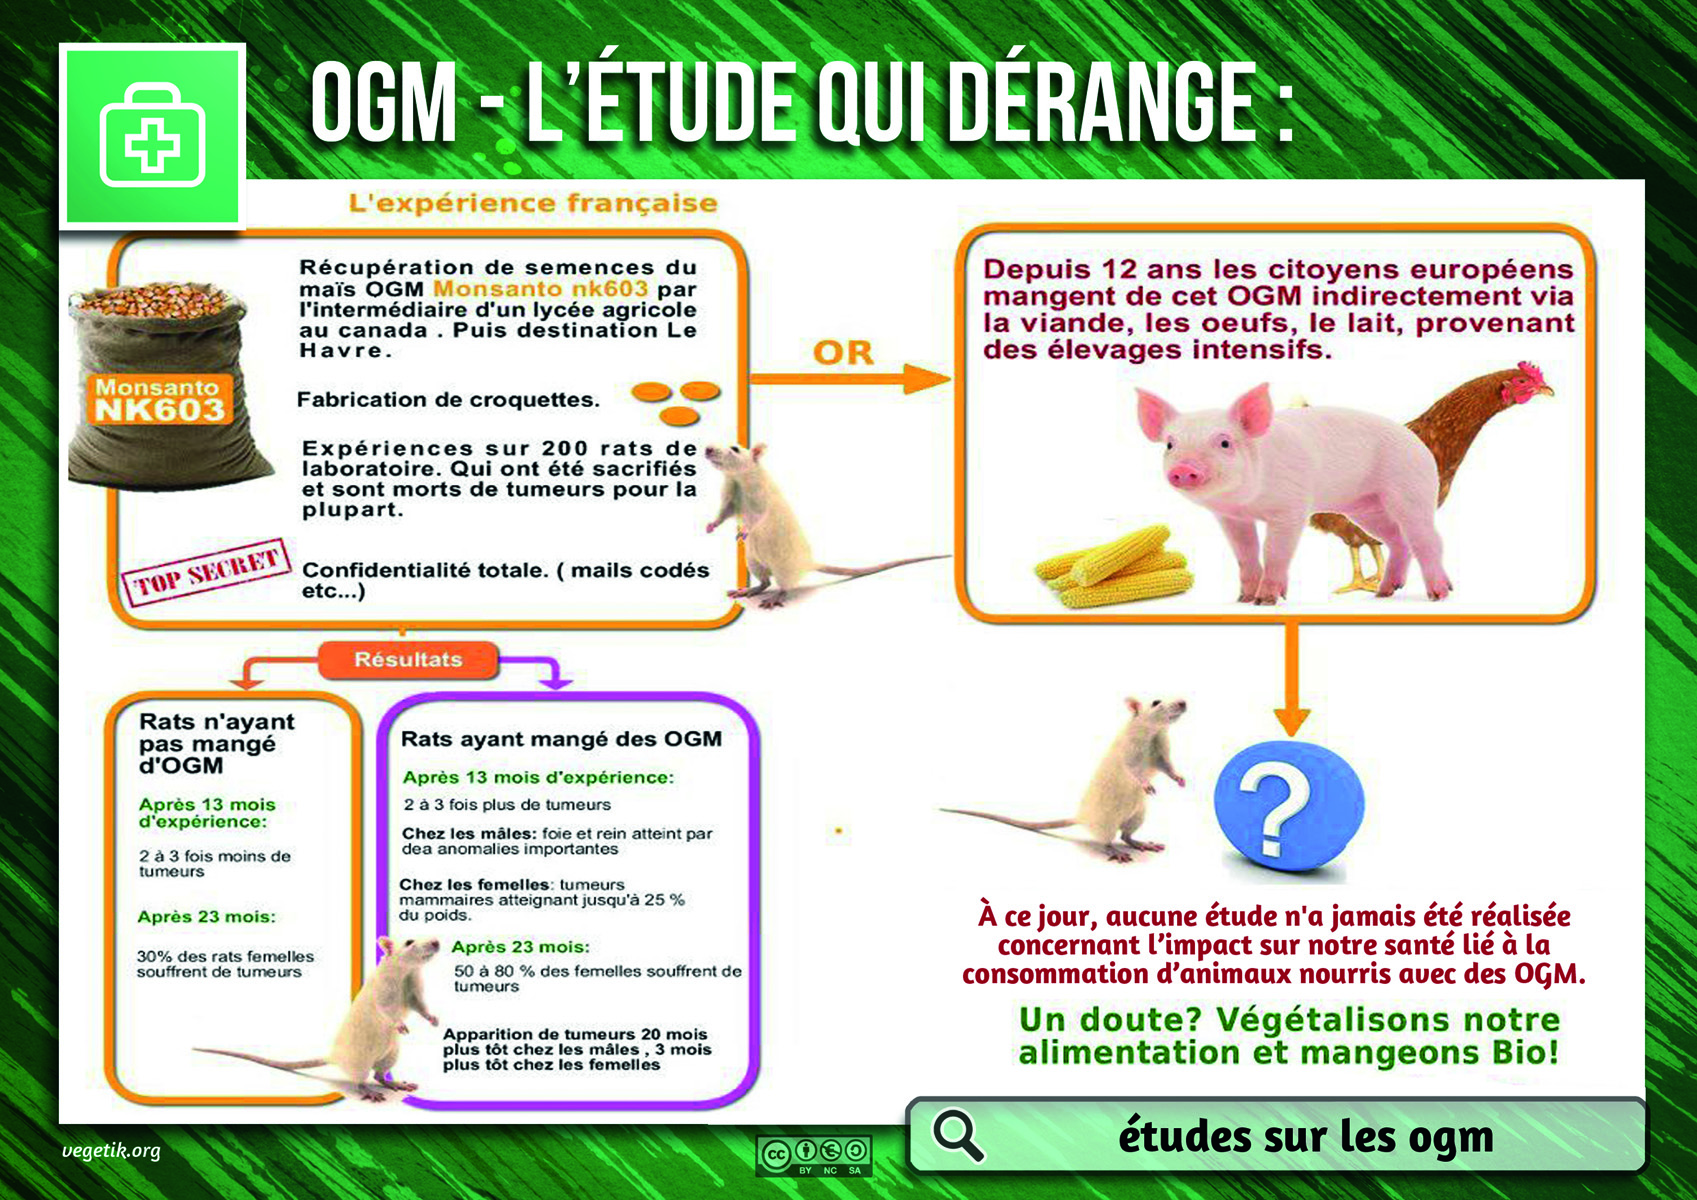 http://www.informaction.info/sites/default/files/images/sa5_-_etudes_sur_les_ogm.jpg